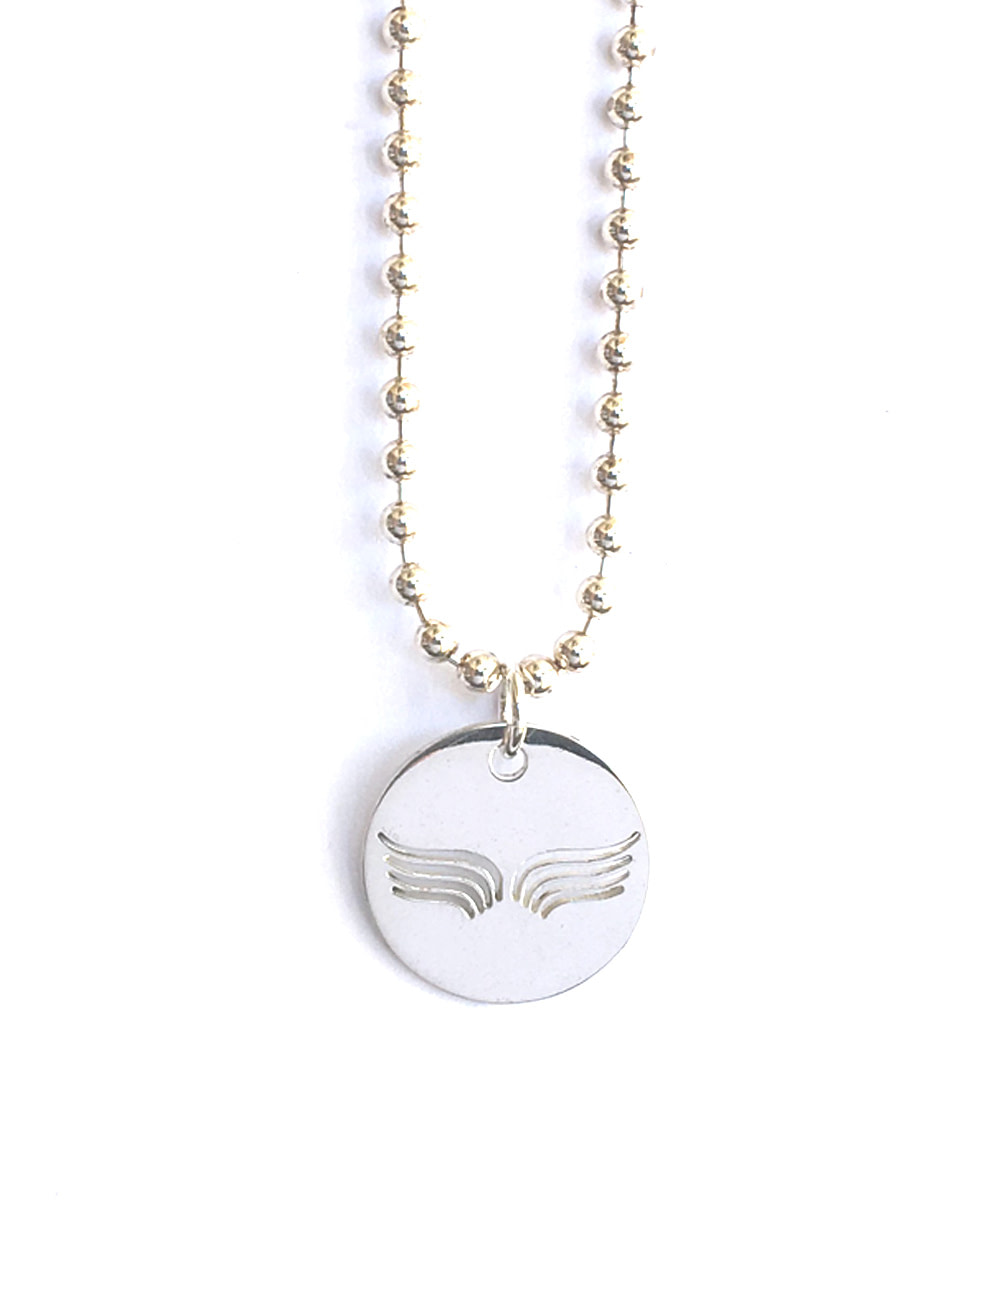 122 collier medaille aile3 web